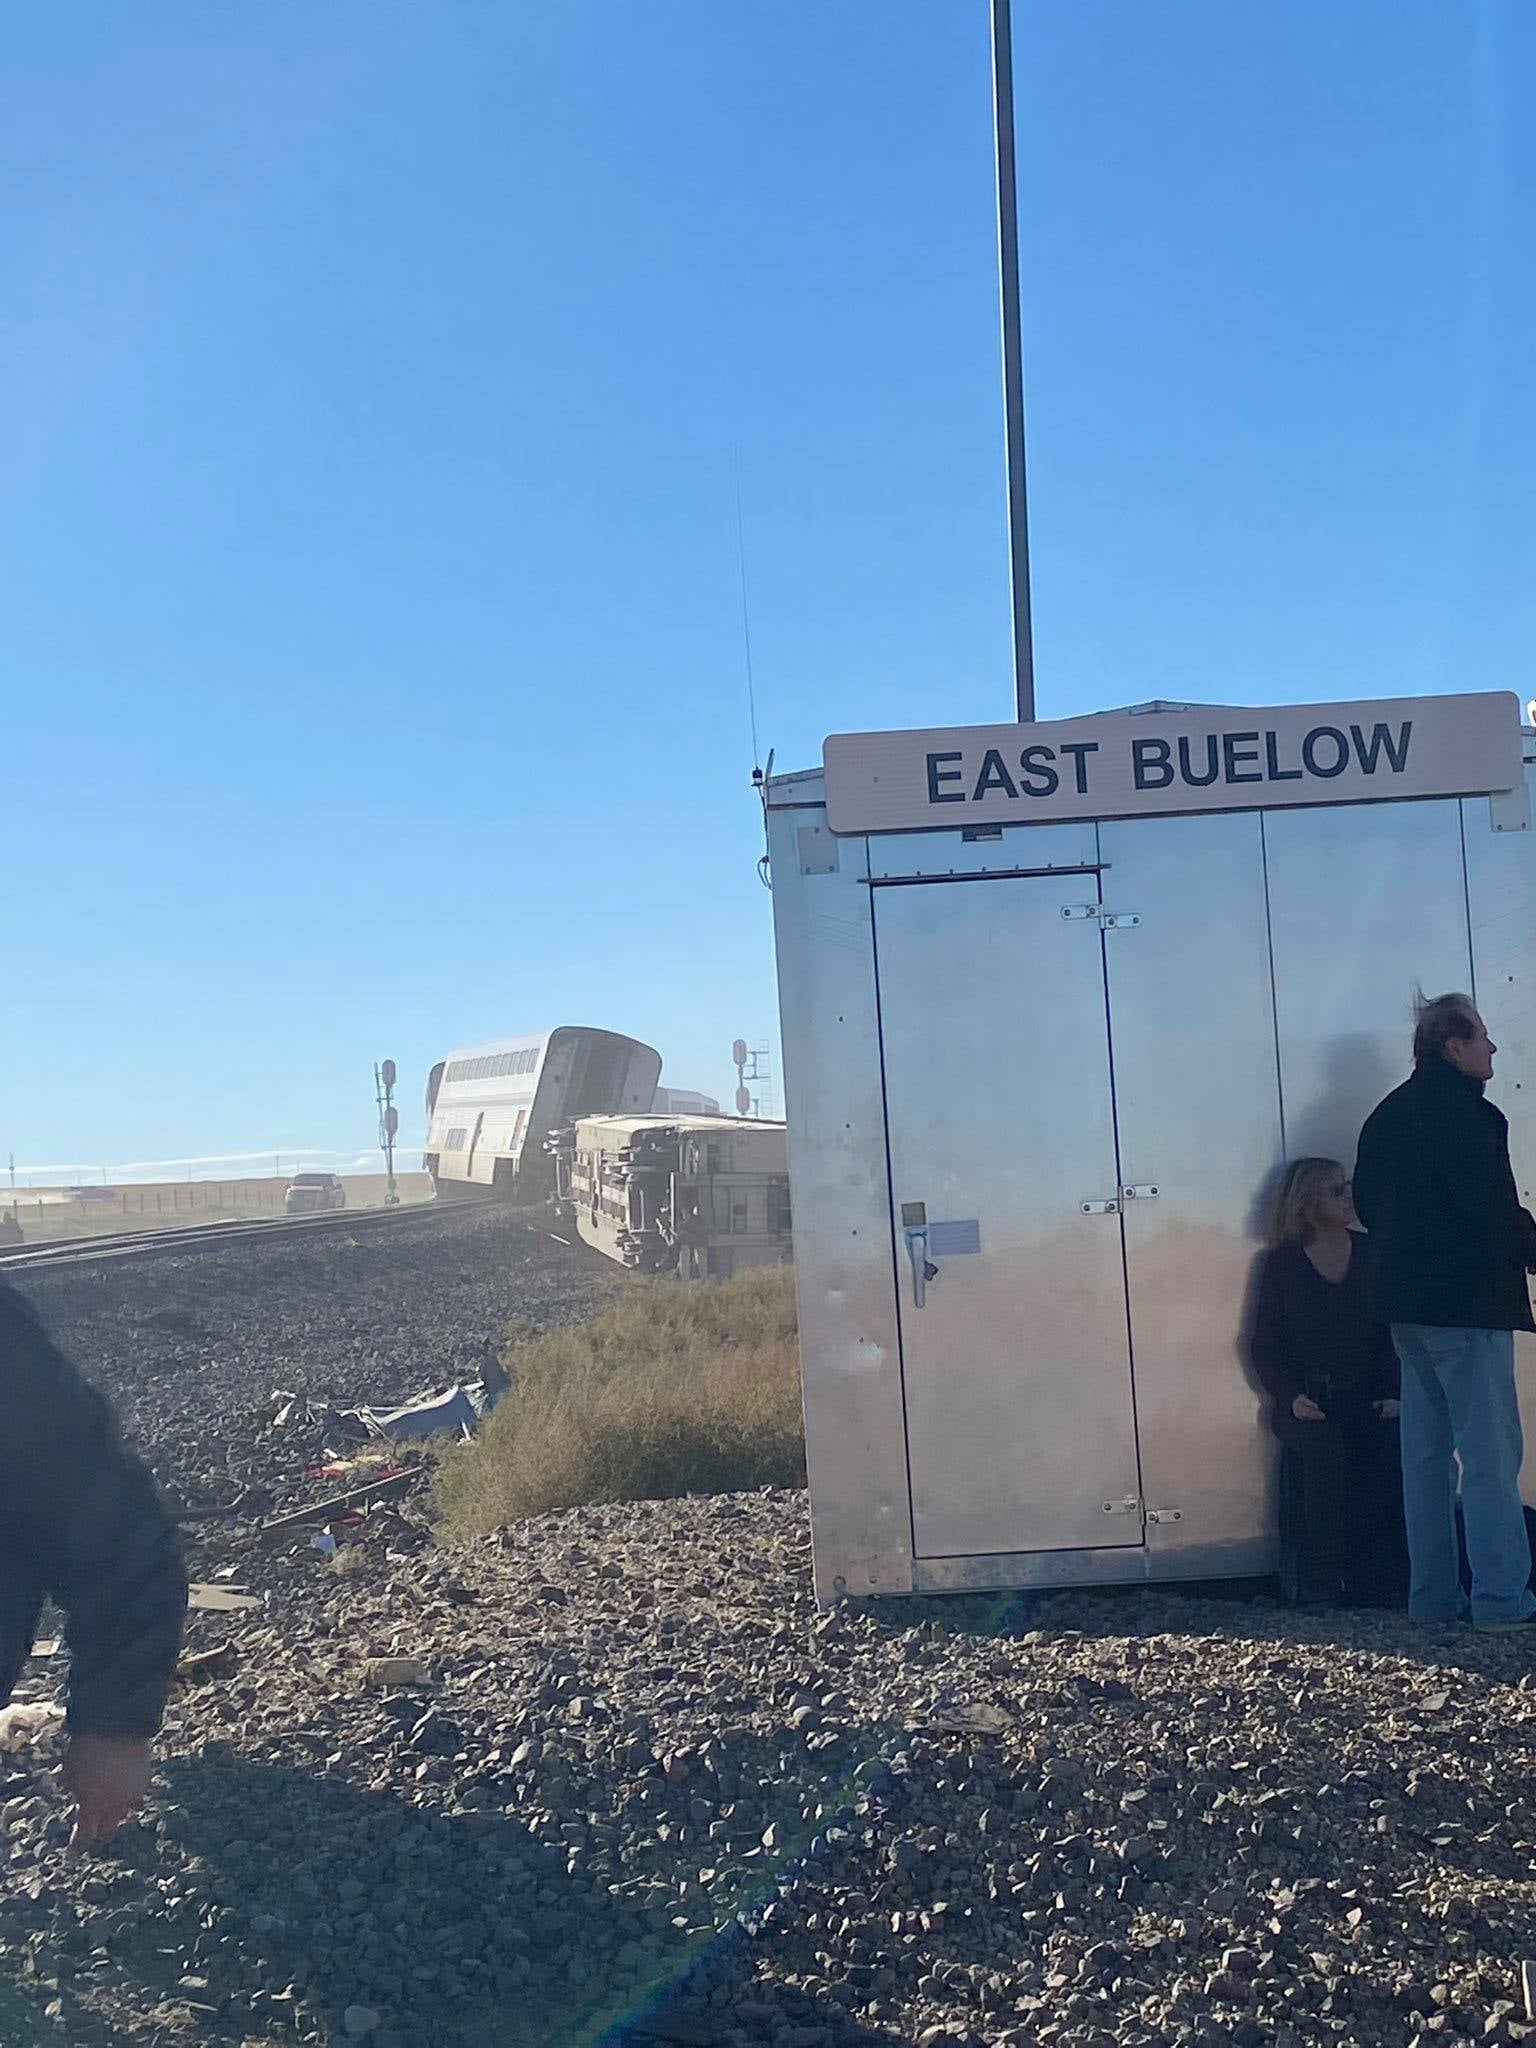 People stand by silver box near derailed train cars